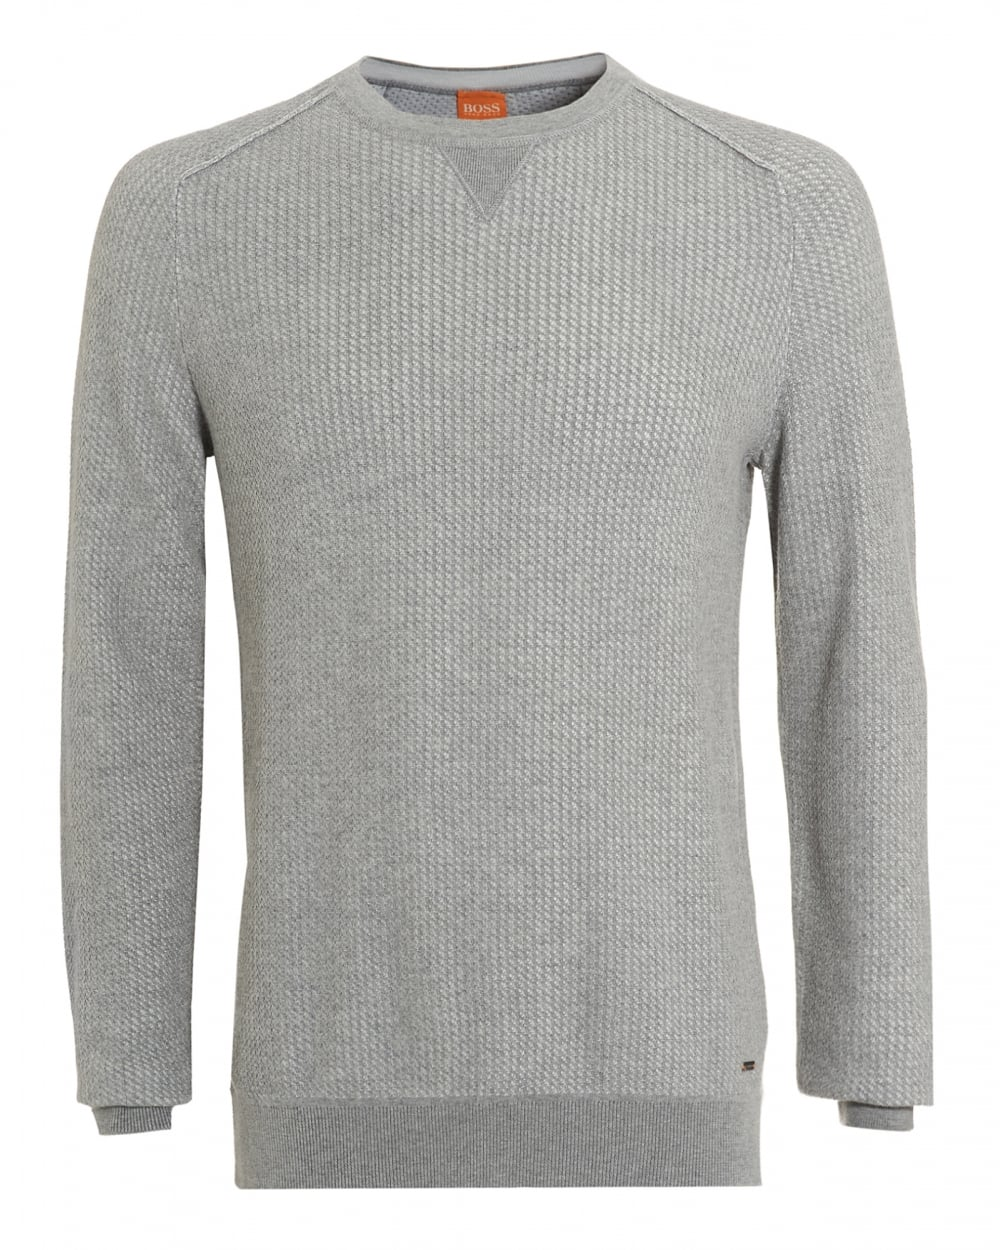 Mens Kawanan Jumper, Grey Cotton Cable Knit